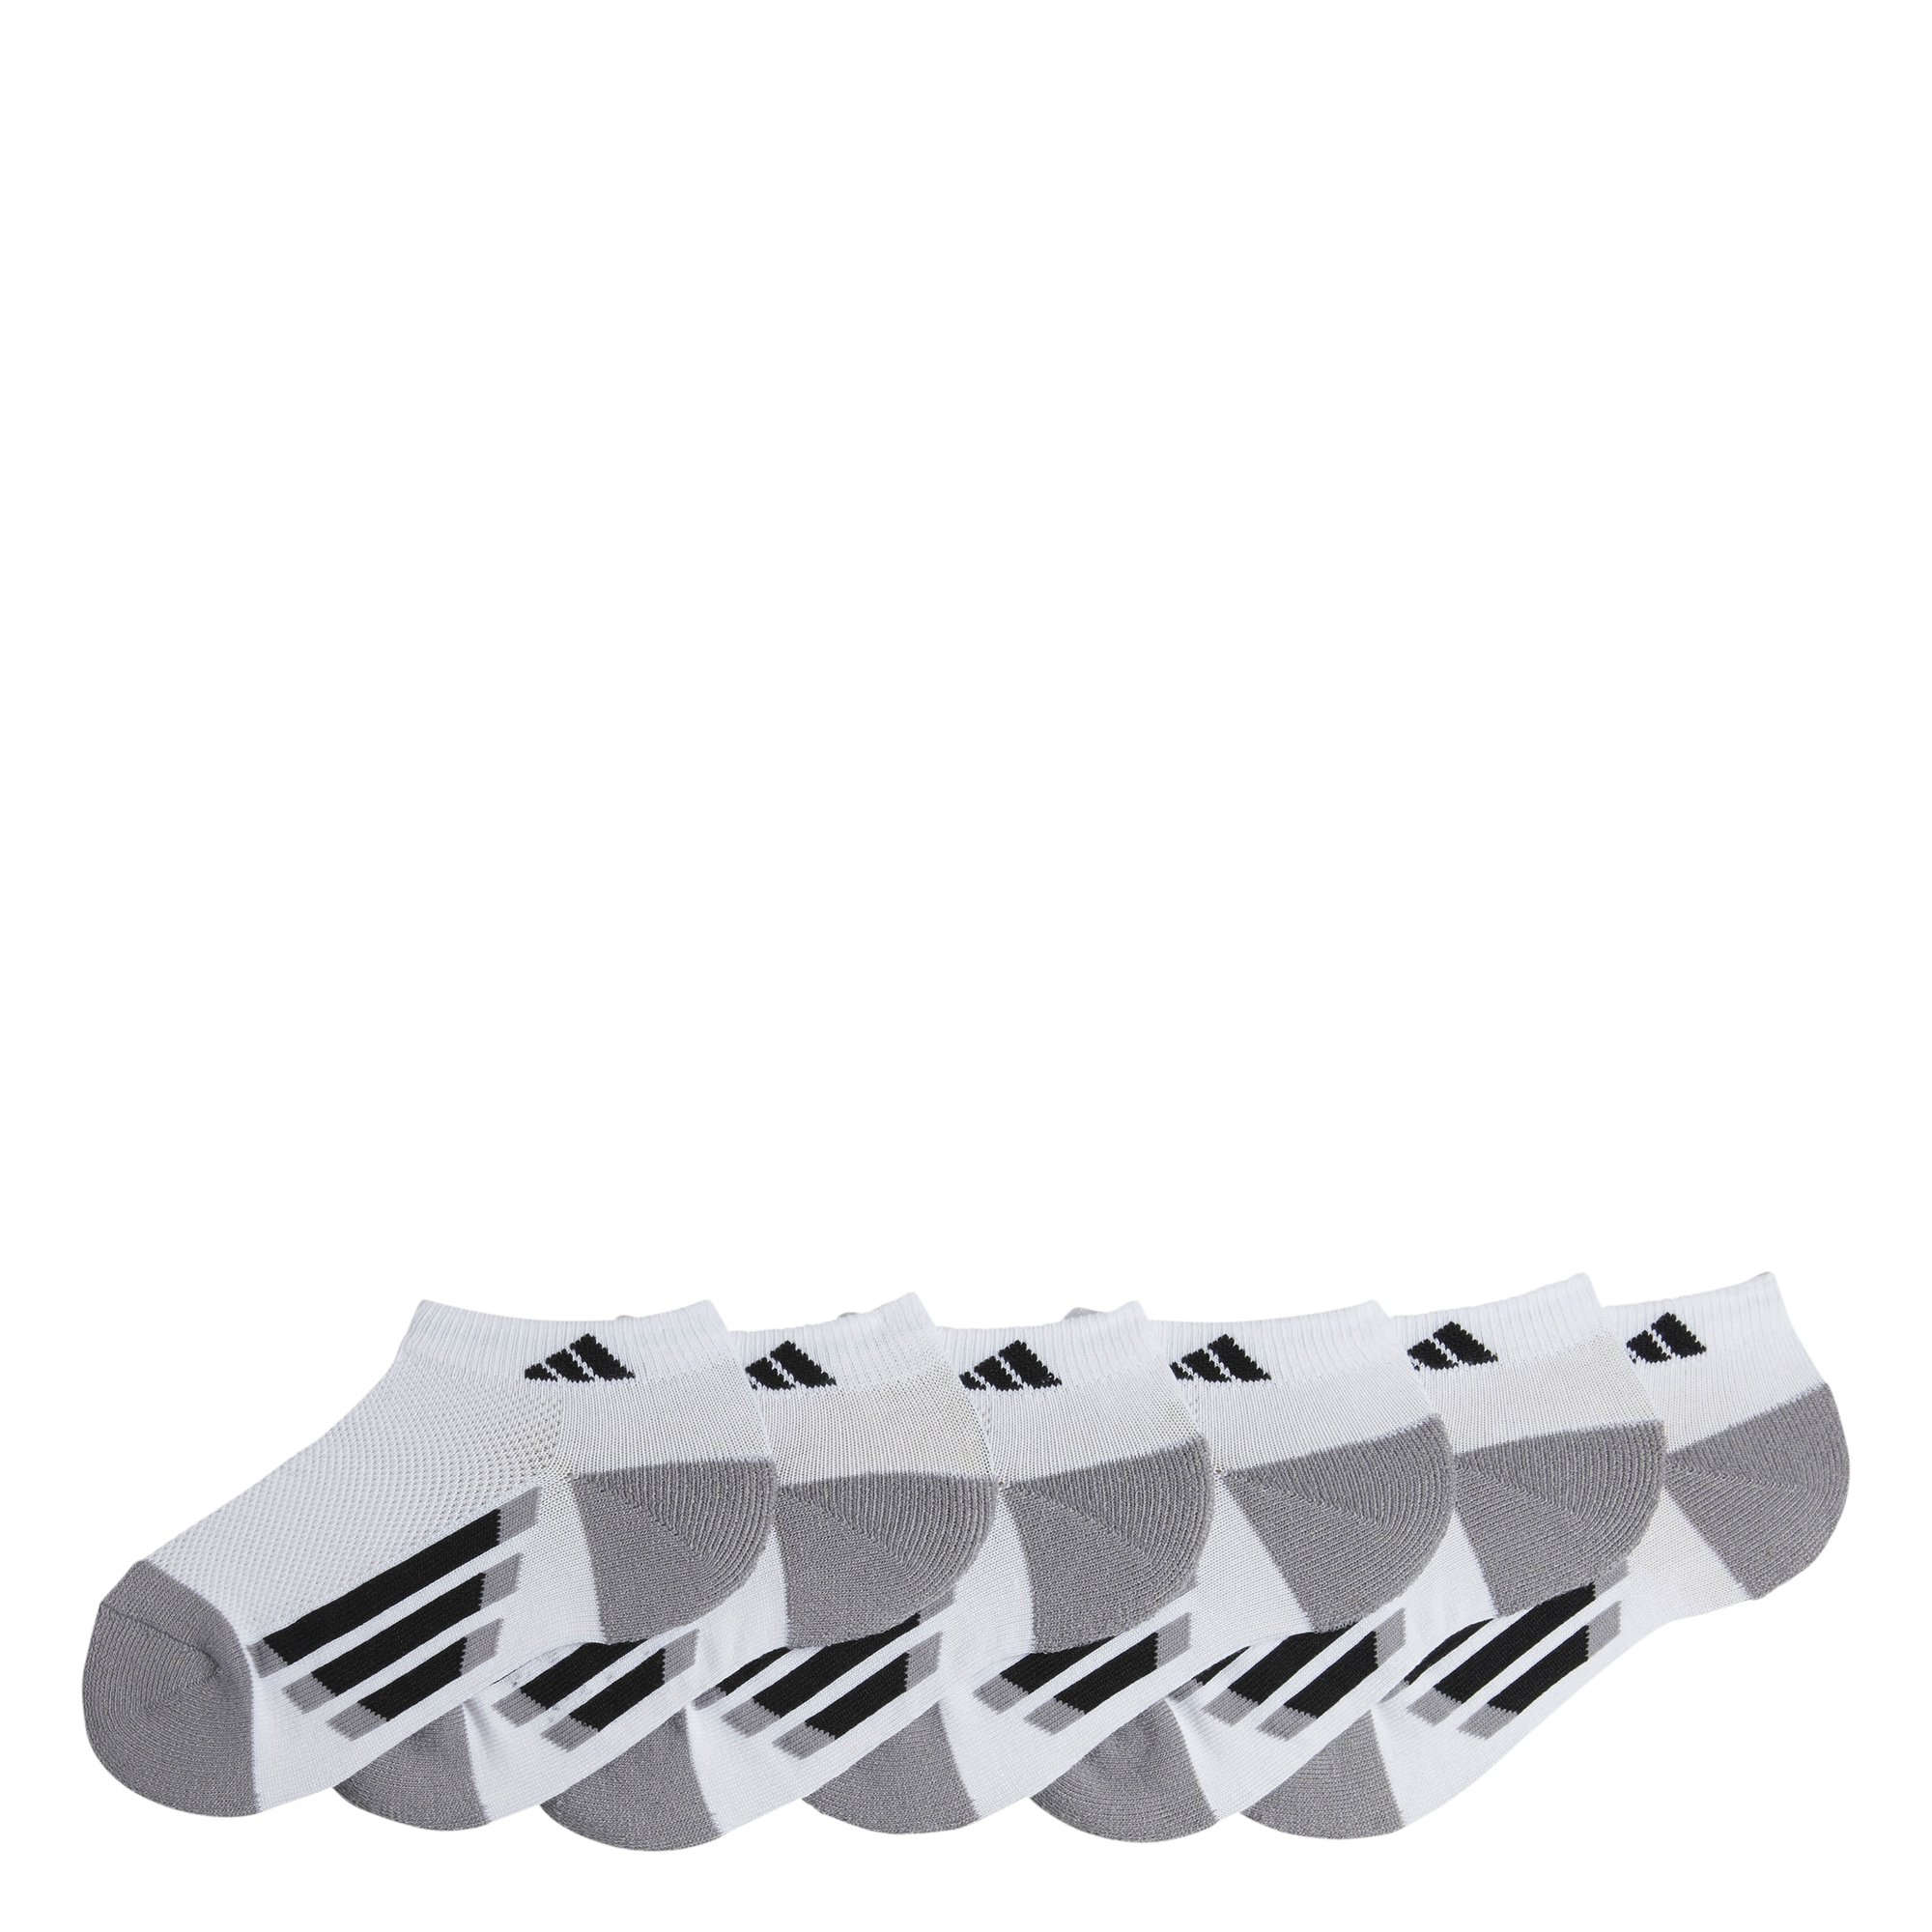 adidas Boys / Youth Cushioned Low Cut Socks (6-Pack)